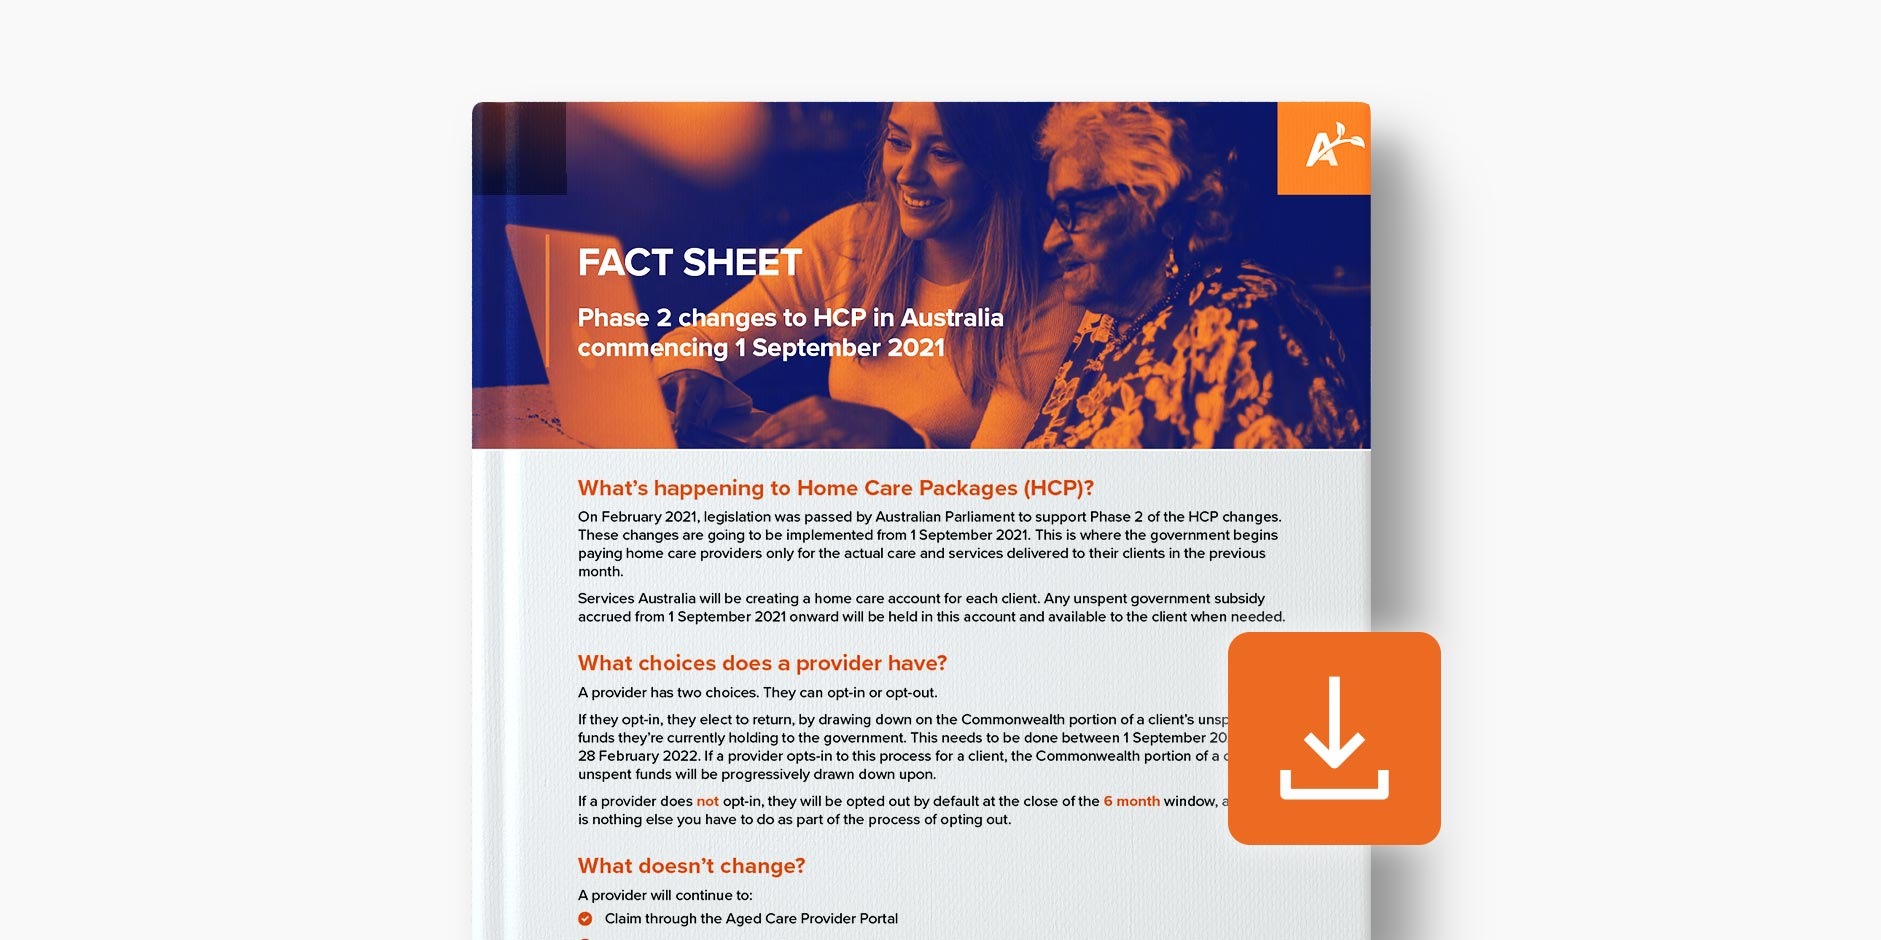 AlayaCare_ANZ_Phase_2_changes_HCP_Aus_Sep_____